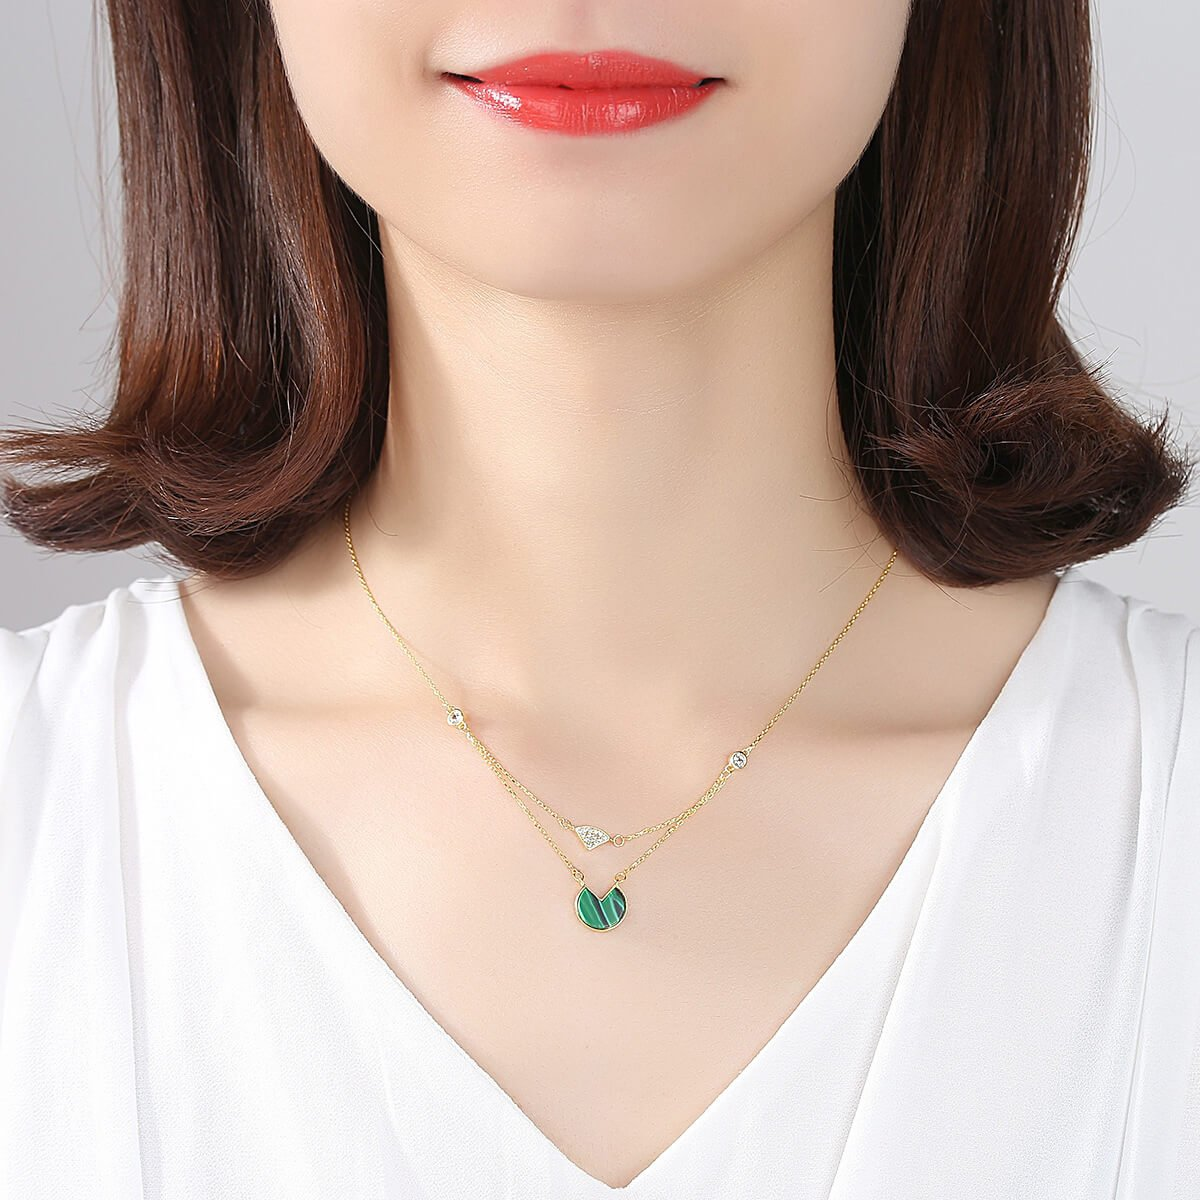 Model wears Sterling silver clavicle necklace for ladies with malachite